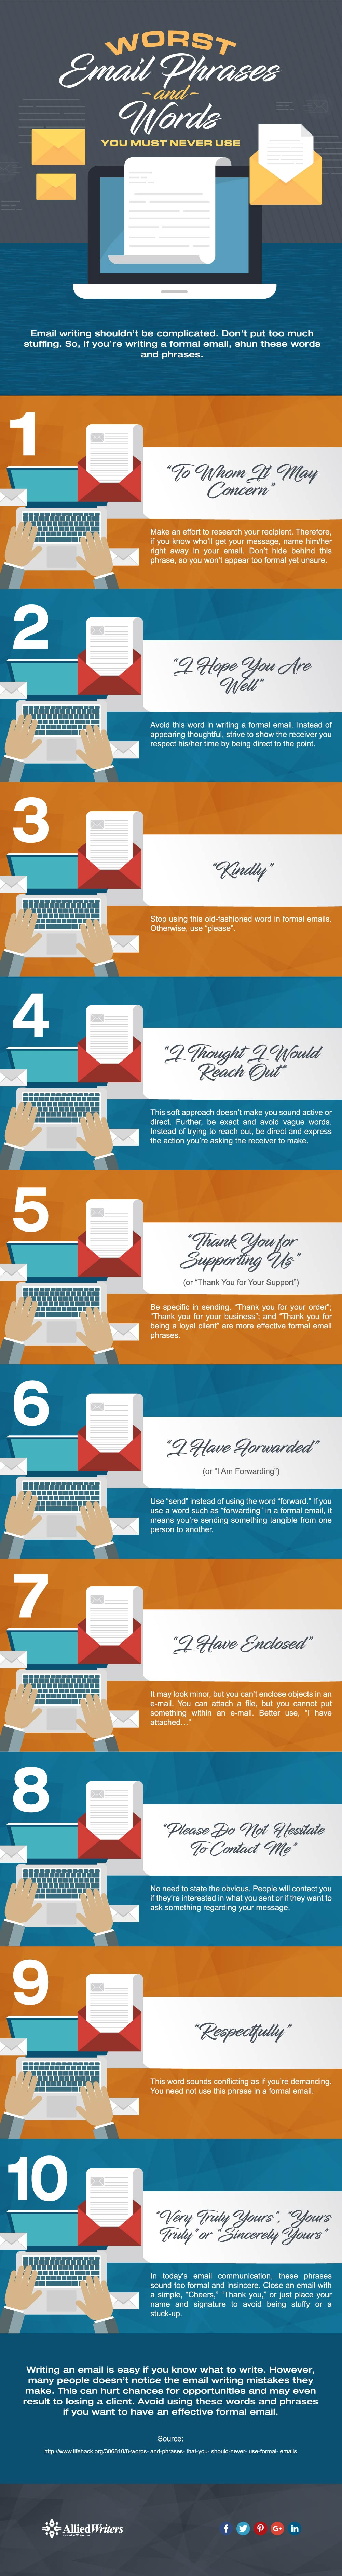 worst email phrase and words you must never use_infographic